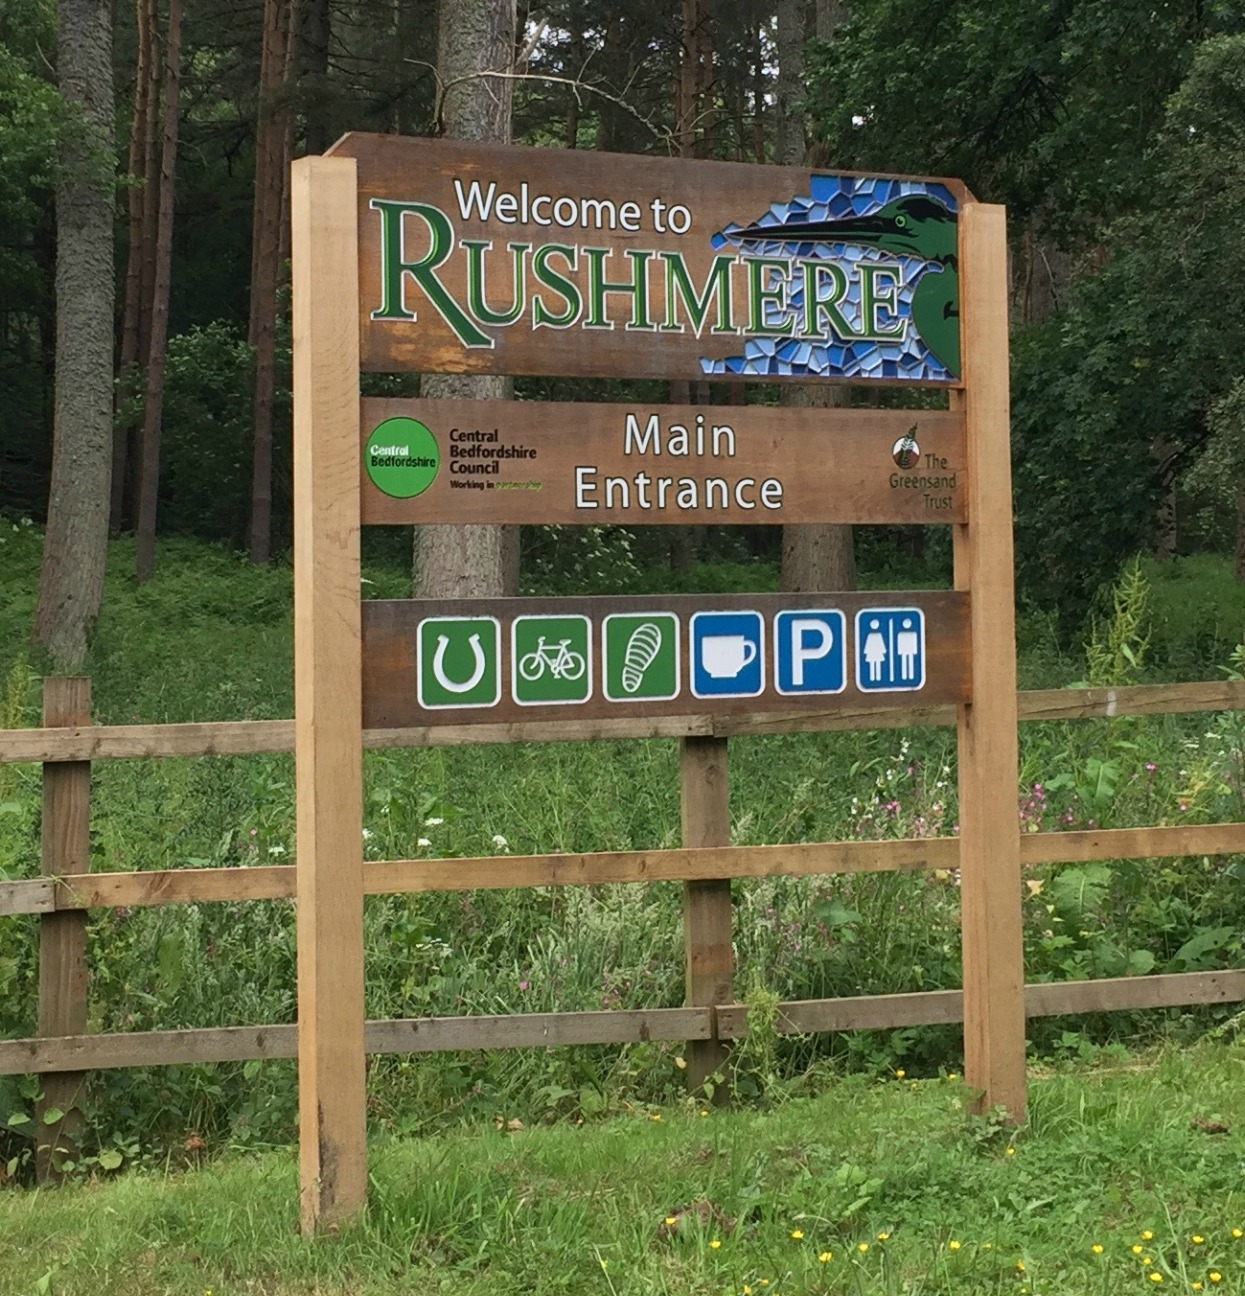 Entrance to Rushmere Park